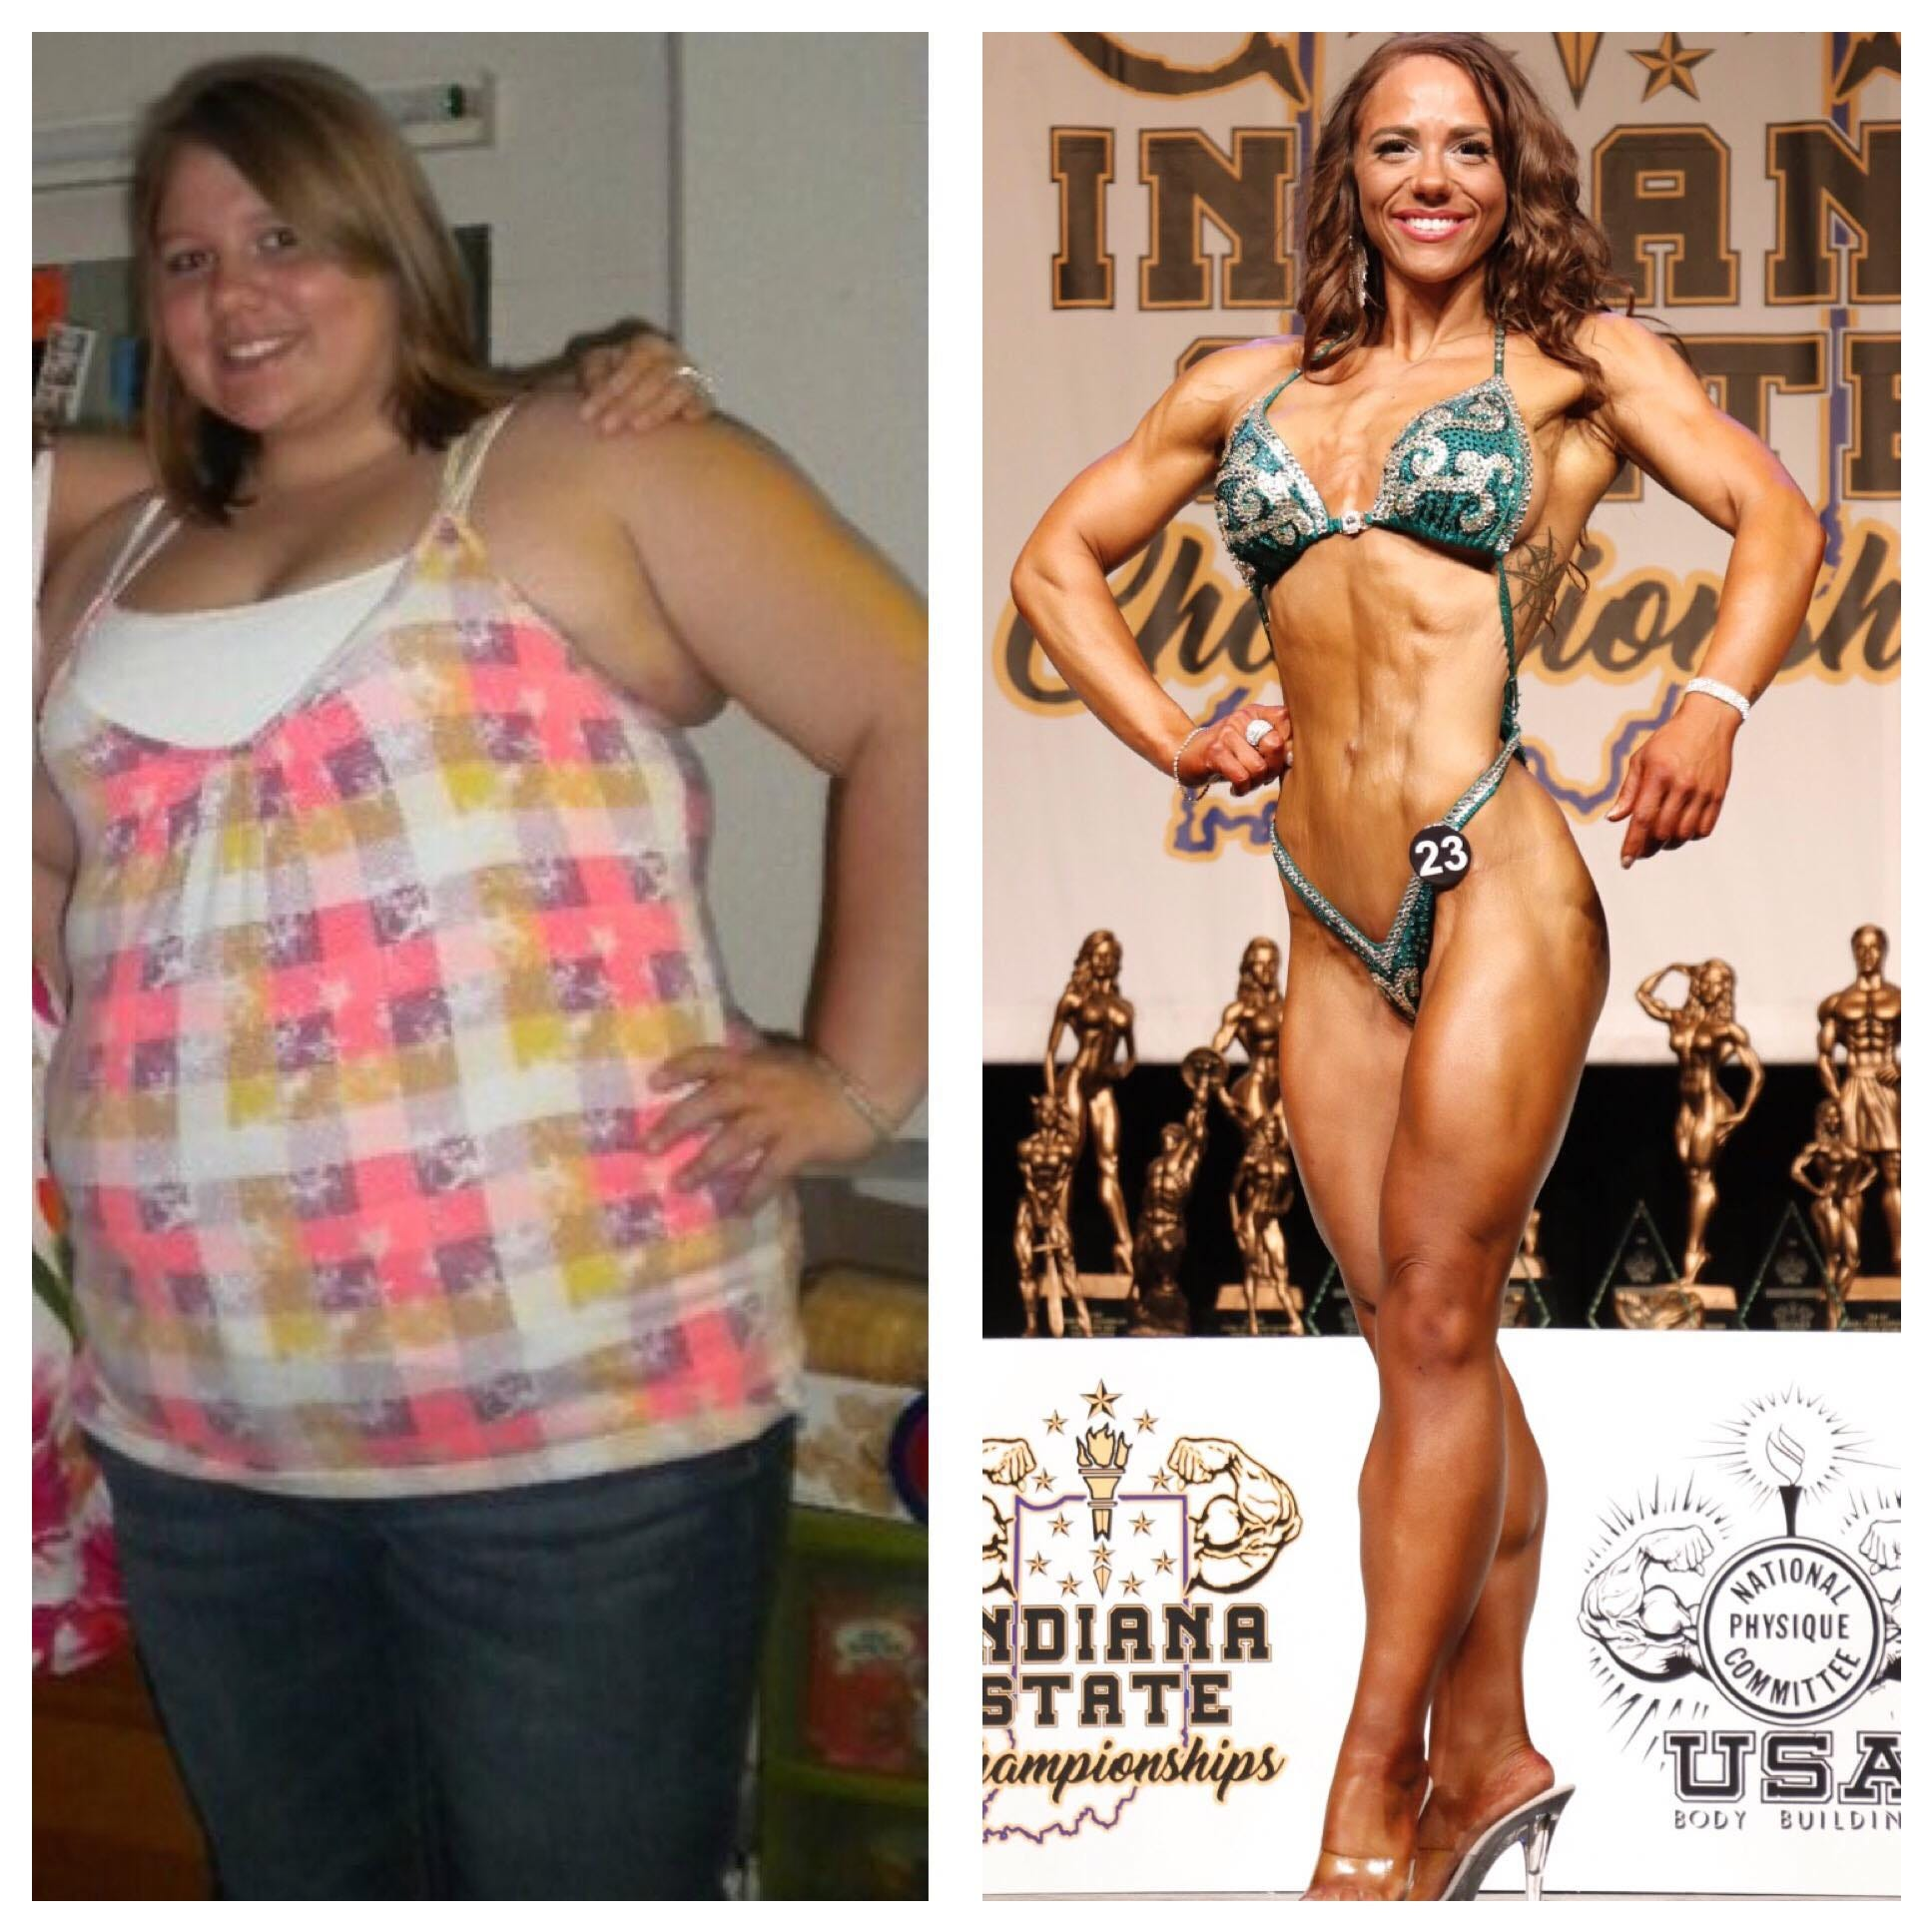 This Indianapolis woman once weighed 300 pounds. Now she's a champion bodybuilder.